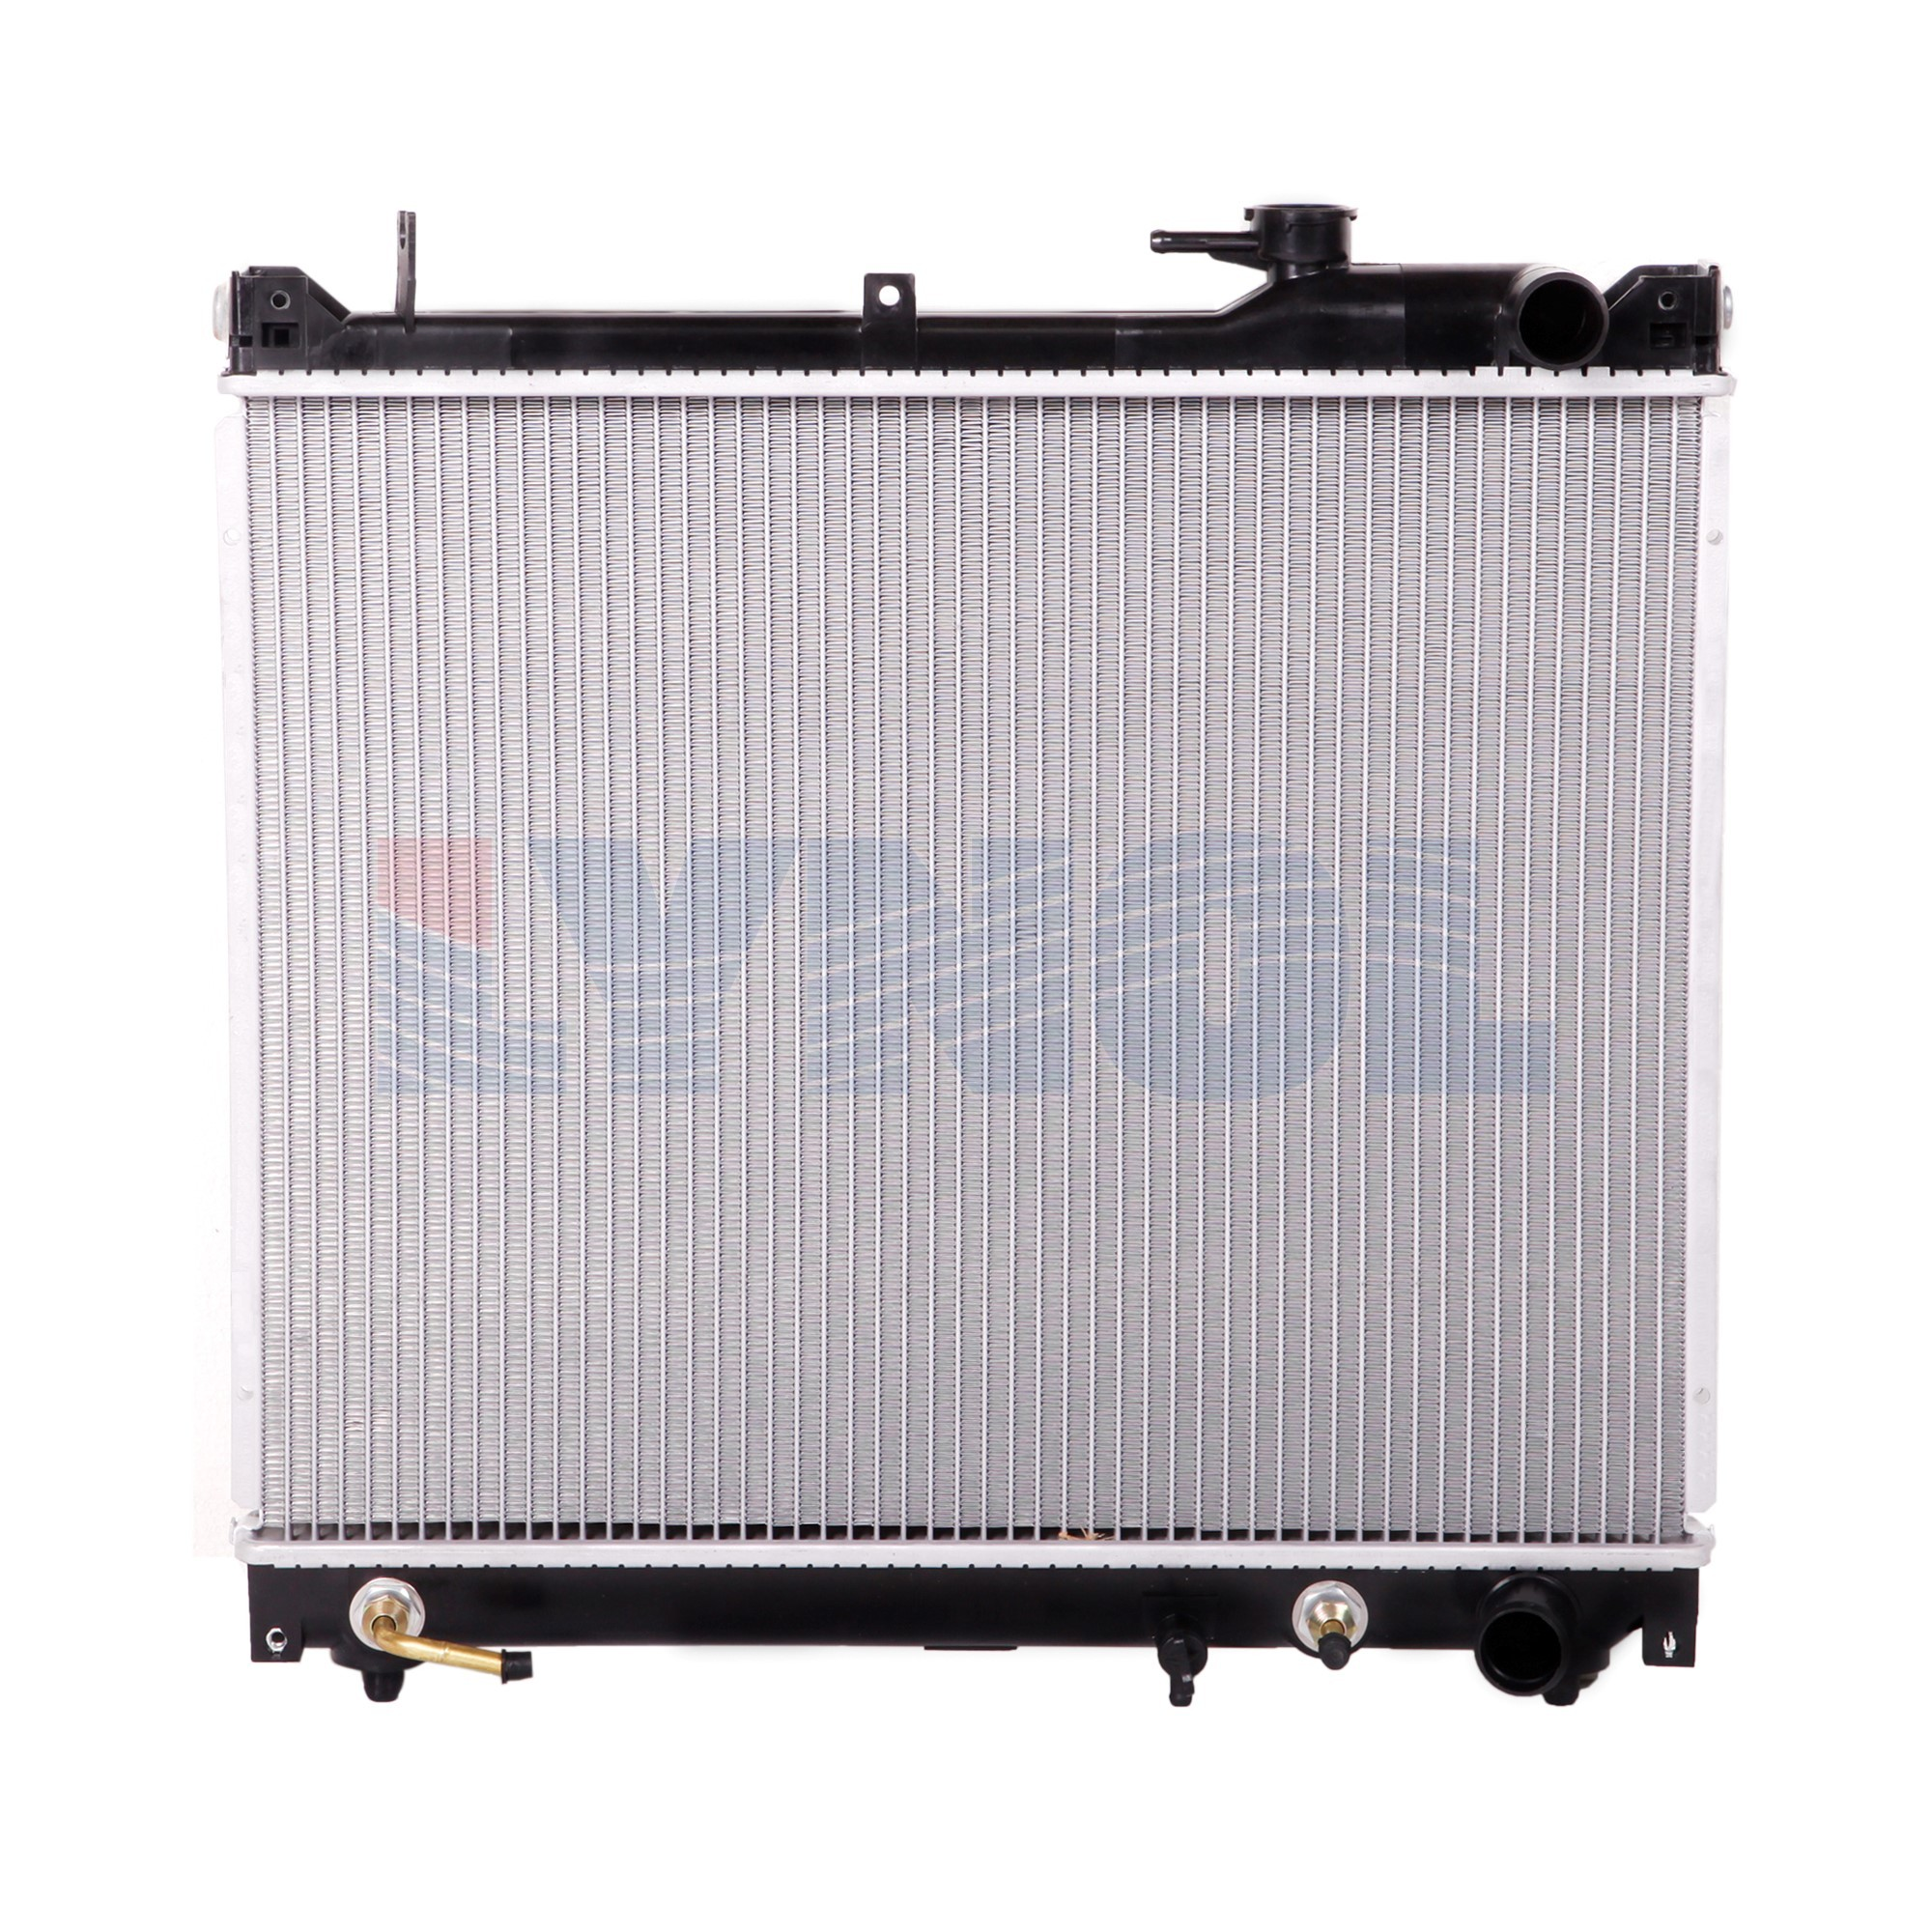 13028 - RADIATOR  - 99-05 SUZ VITARA A/T 4CY 1.6/2.0L INLET/OUTLET ON RIGHT RAD